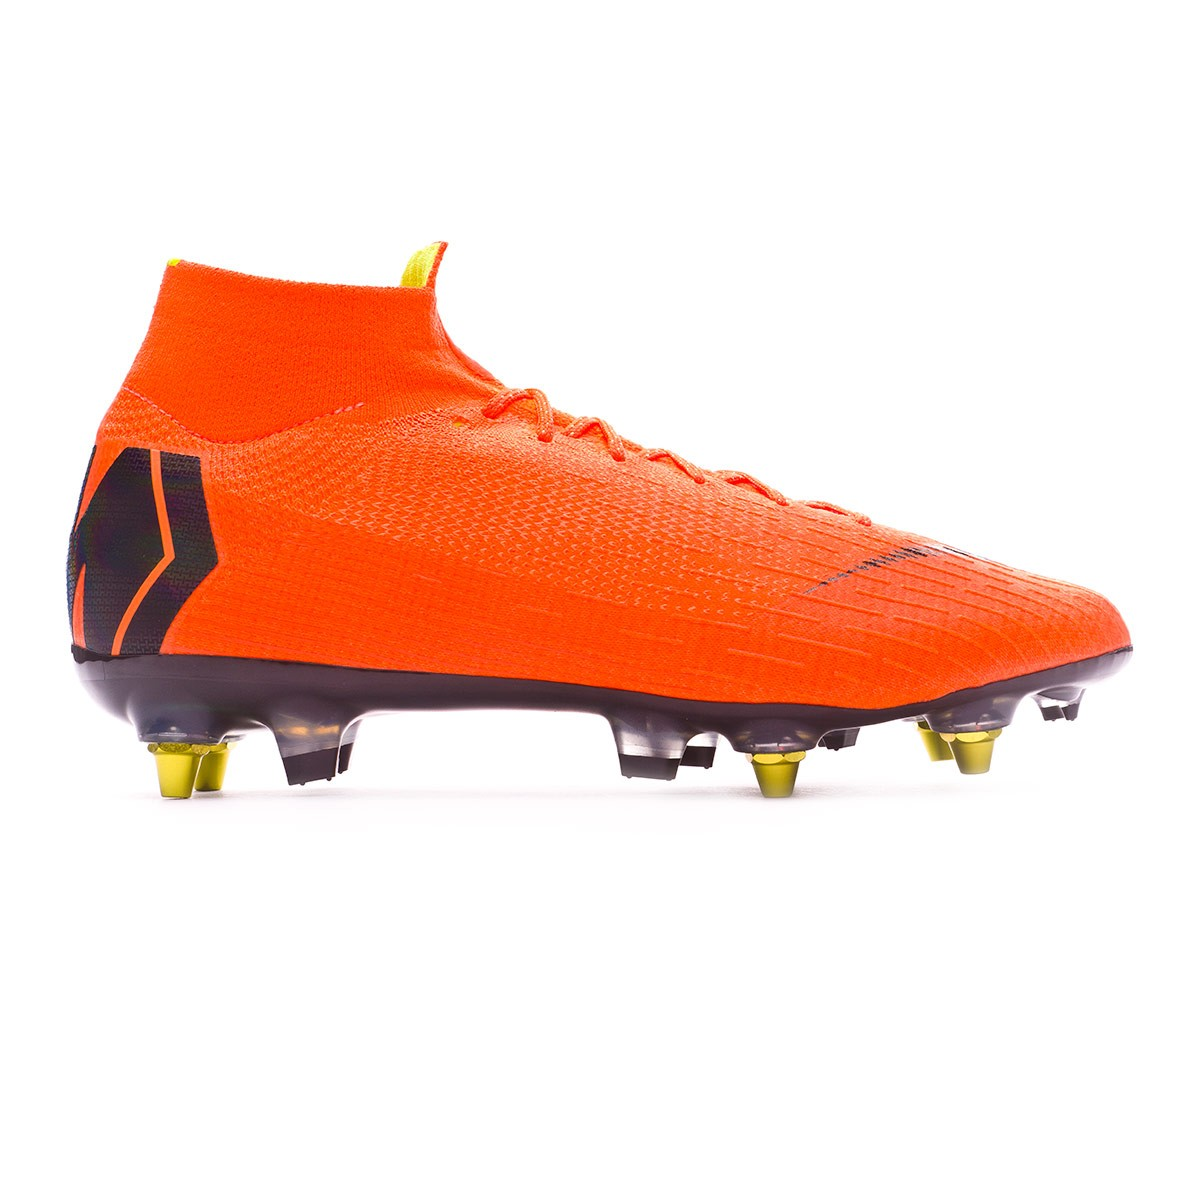 8bbb3cd14 Football Boots Nike Mercurial Superfly VI Elite SG-Pro Anti-Clog Total  orange-Black-Volt - Football store Fútbol Emotion